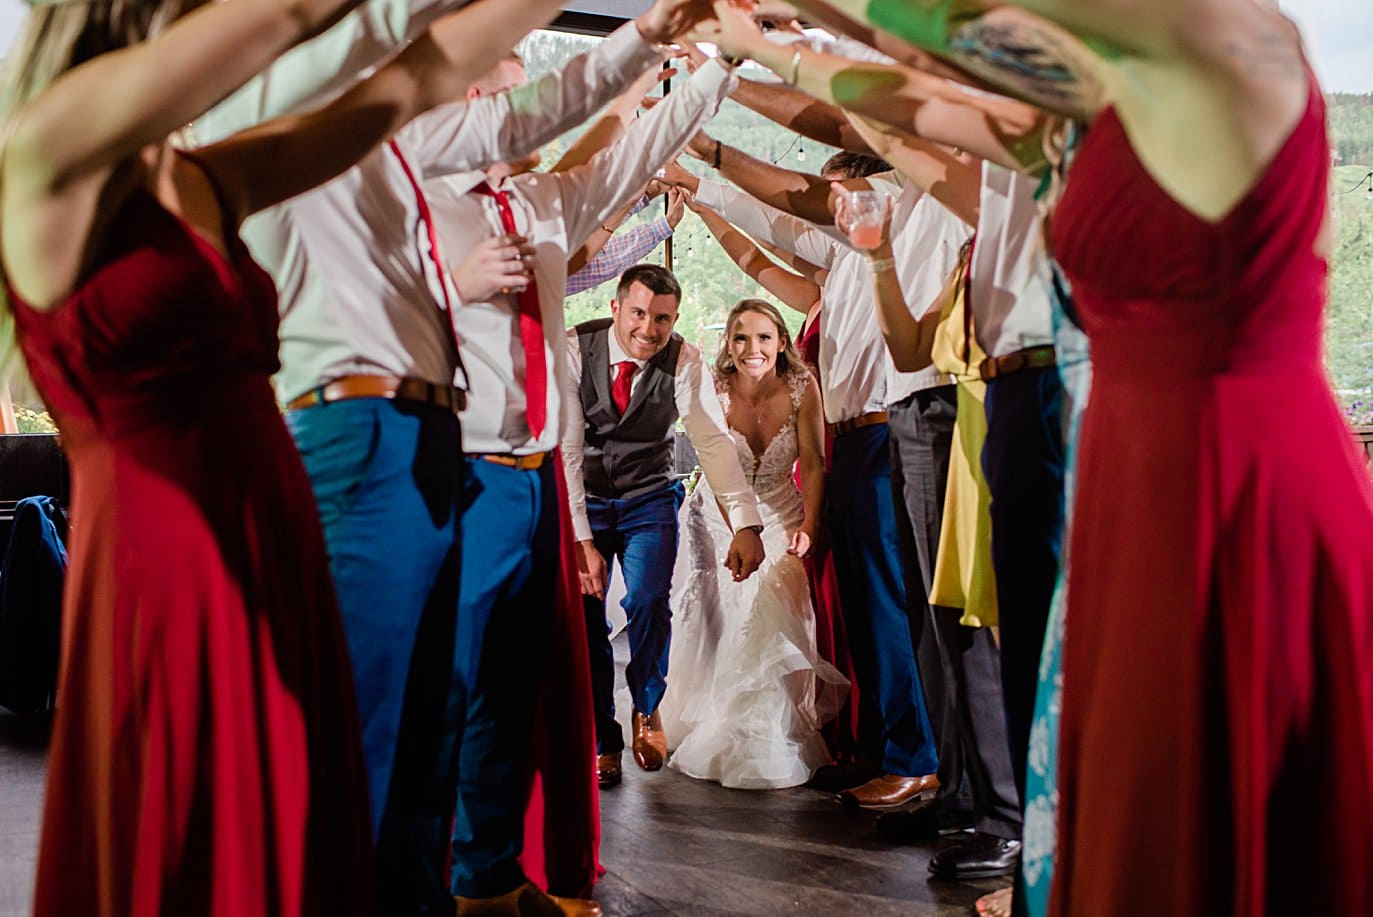 bride and groom go through tunnel at wedding reception at Vail Manor Lodge wedding by Aspen wedding photographer Jennie Crate